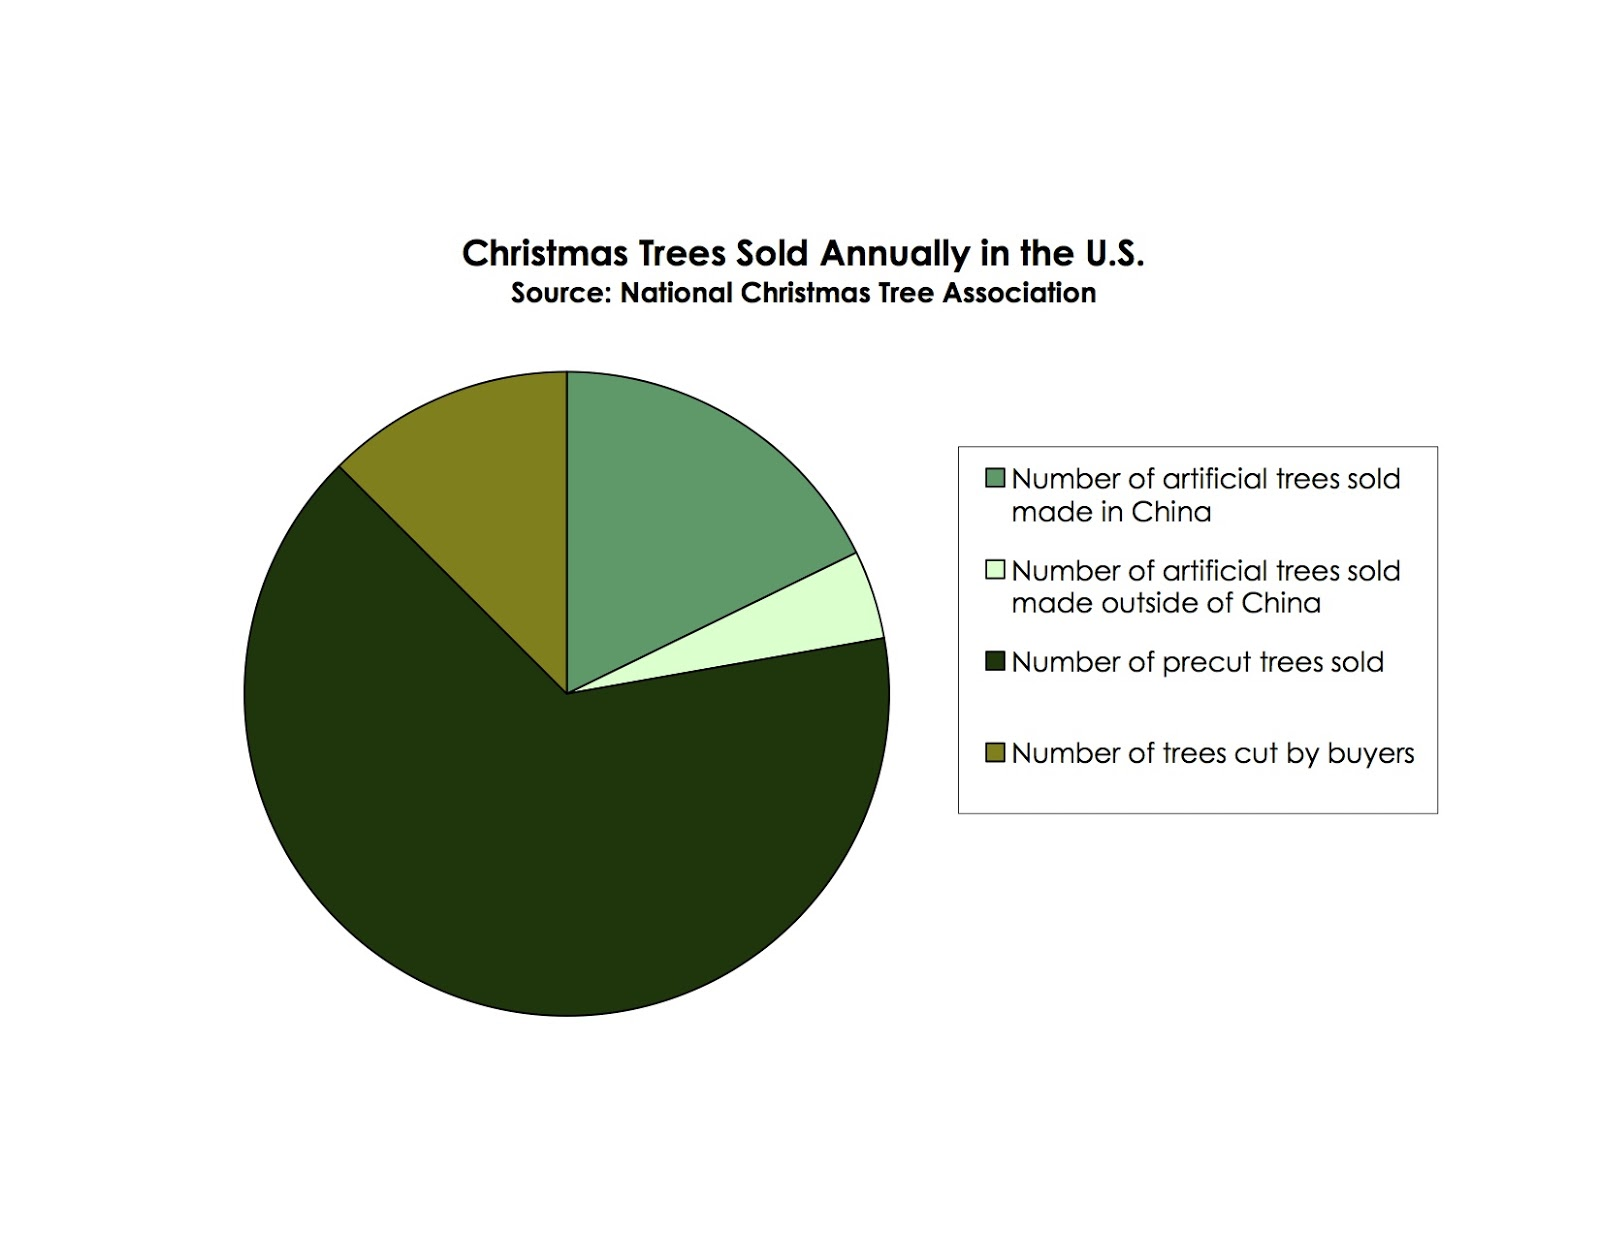 The Daily Tree 70365 Christmas Pie Chart